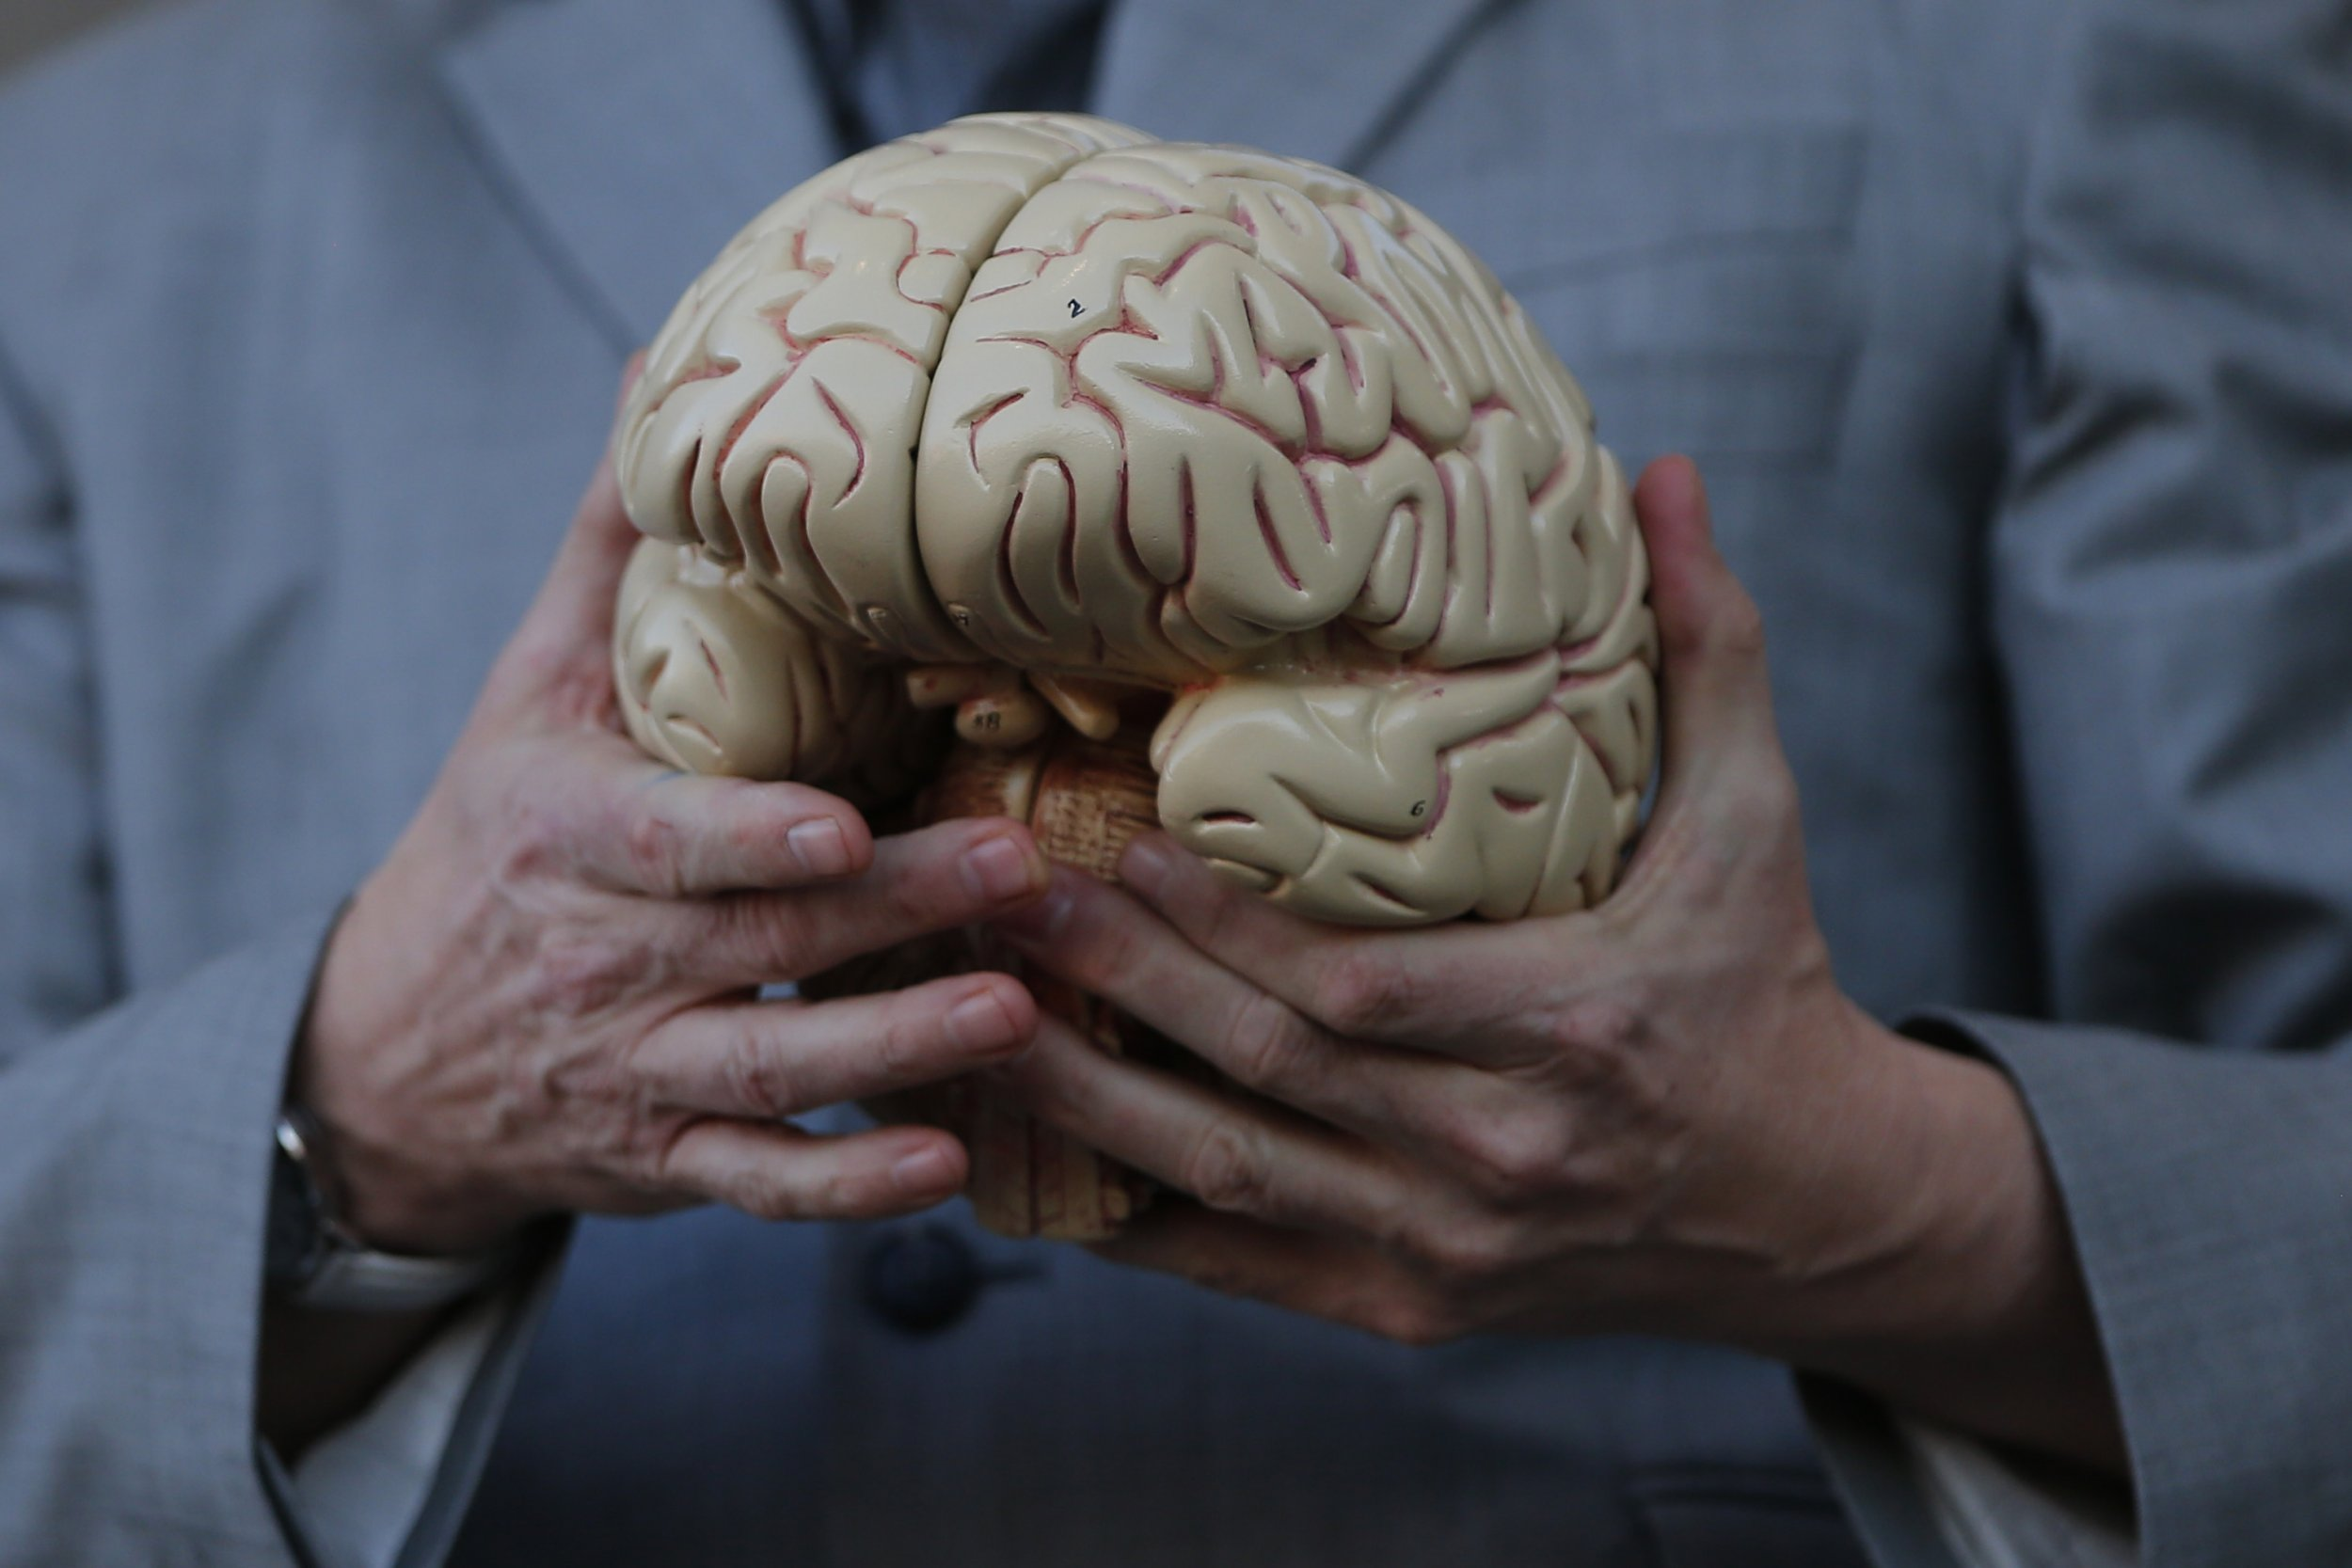 alzheimer u2019s disease starts in childhood  with symptoms found in babies less than a year old